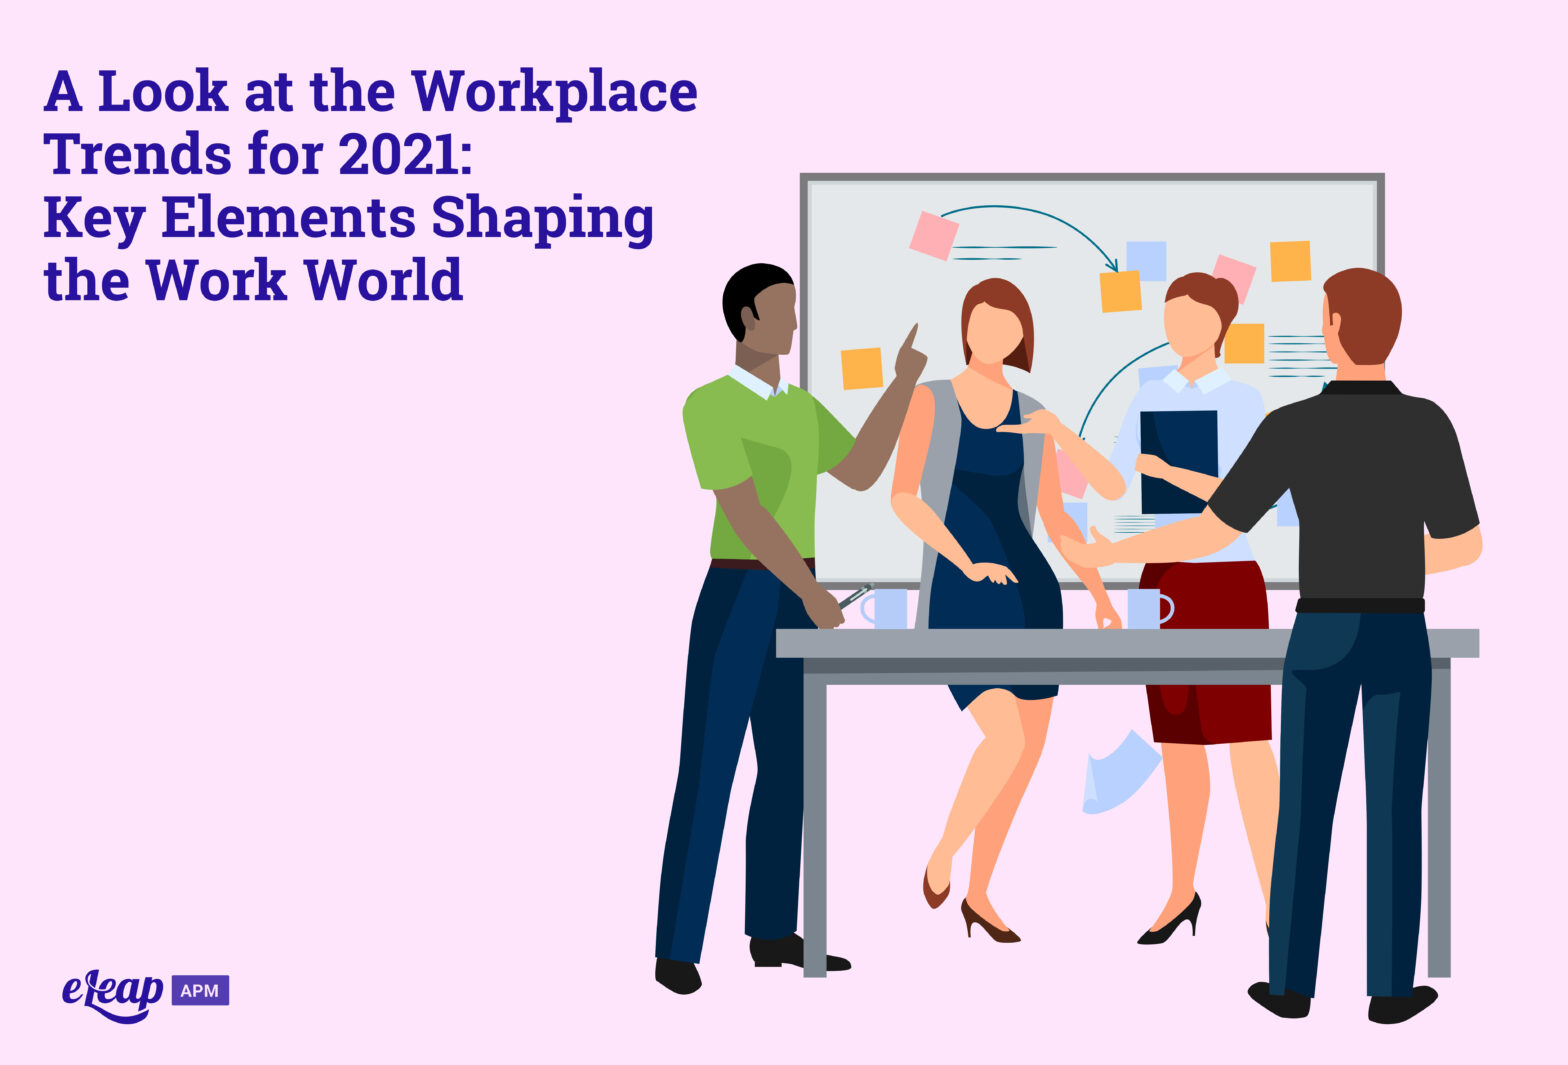 A Look at Workplace Trends for 2021: Key Elements Shaping the Work World